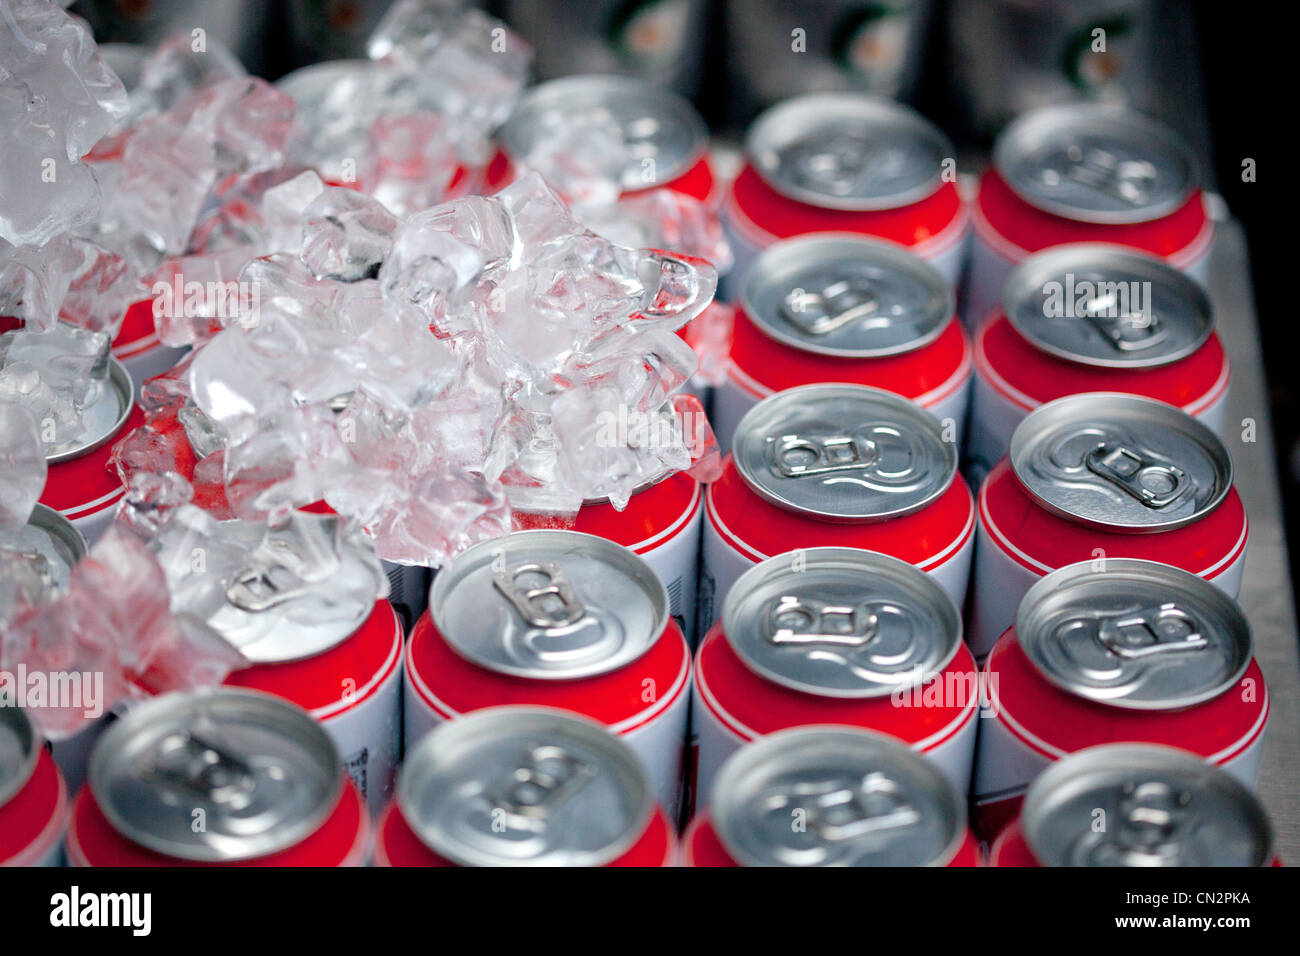 Drinks cans and ice cubes, close up - Stock Image